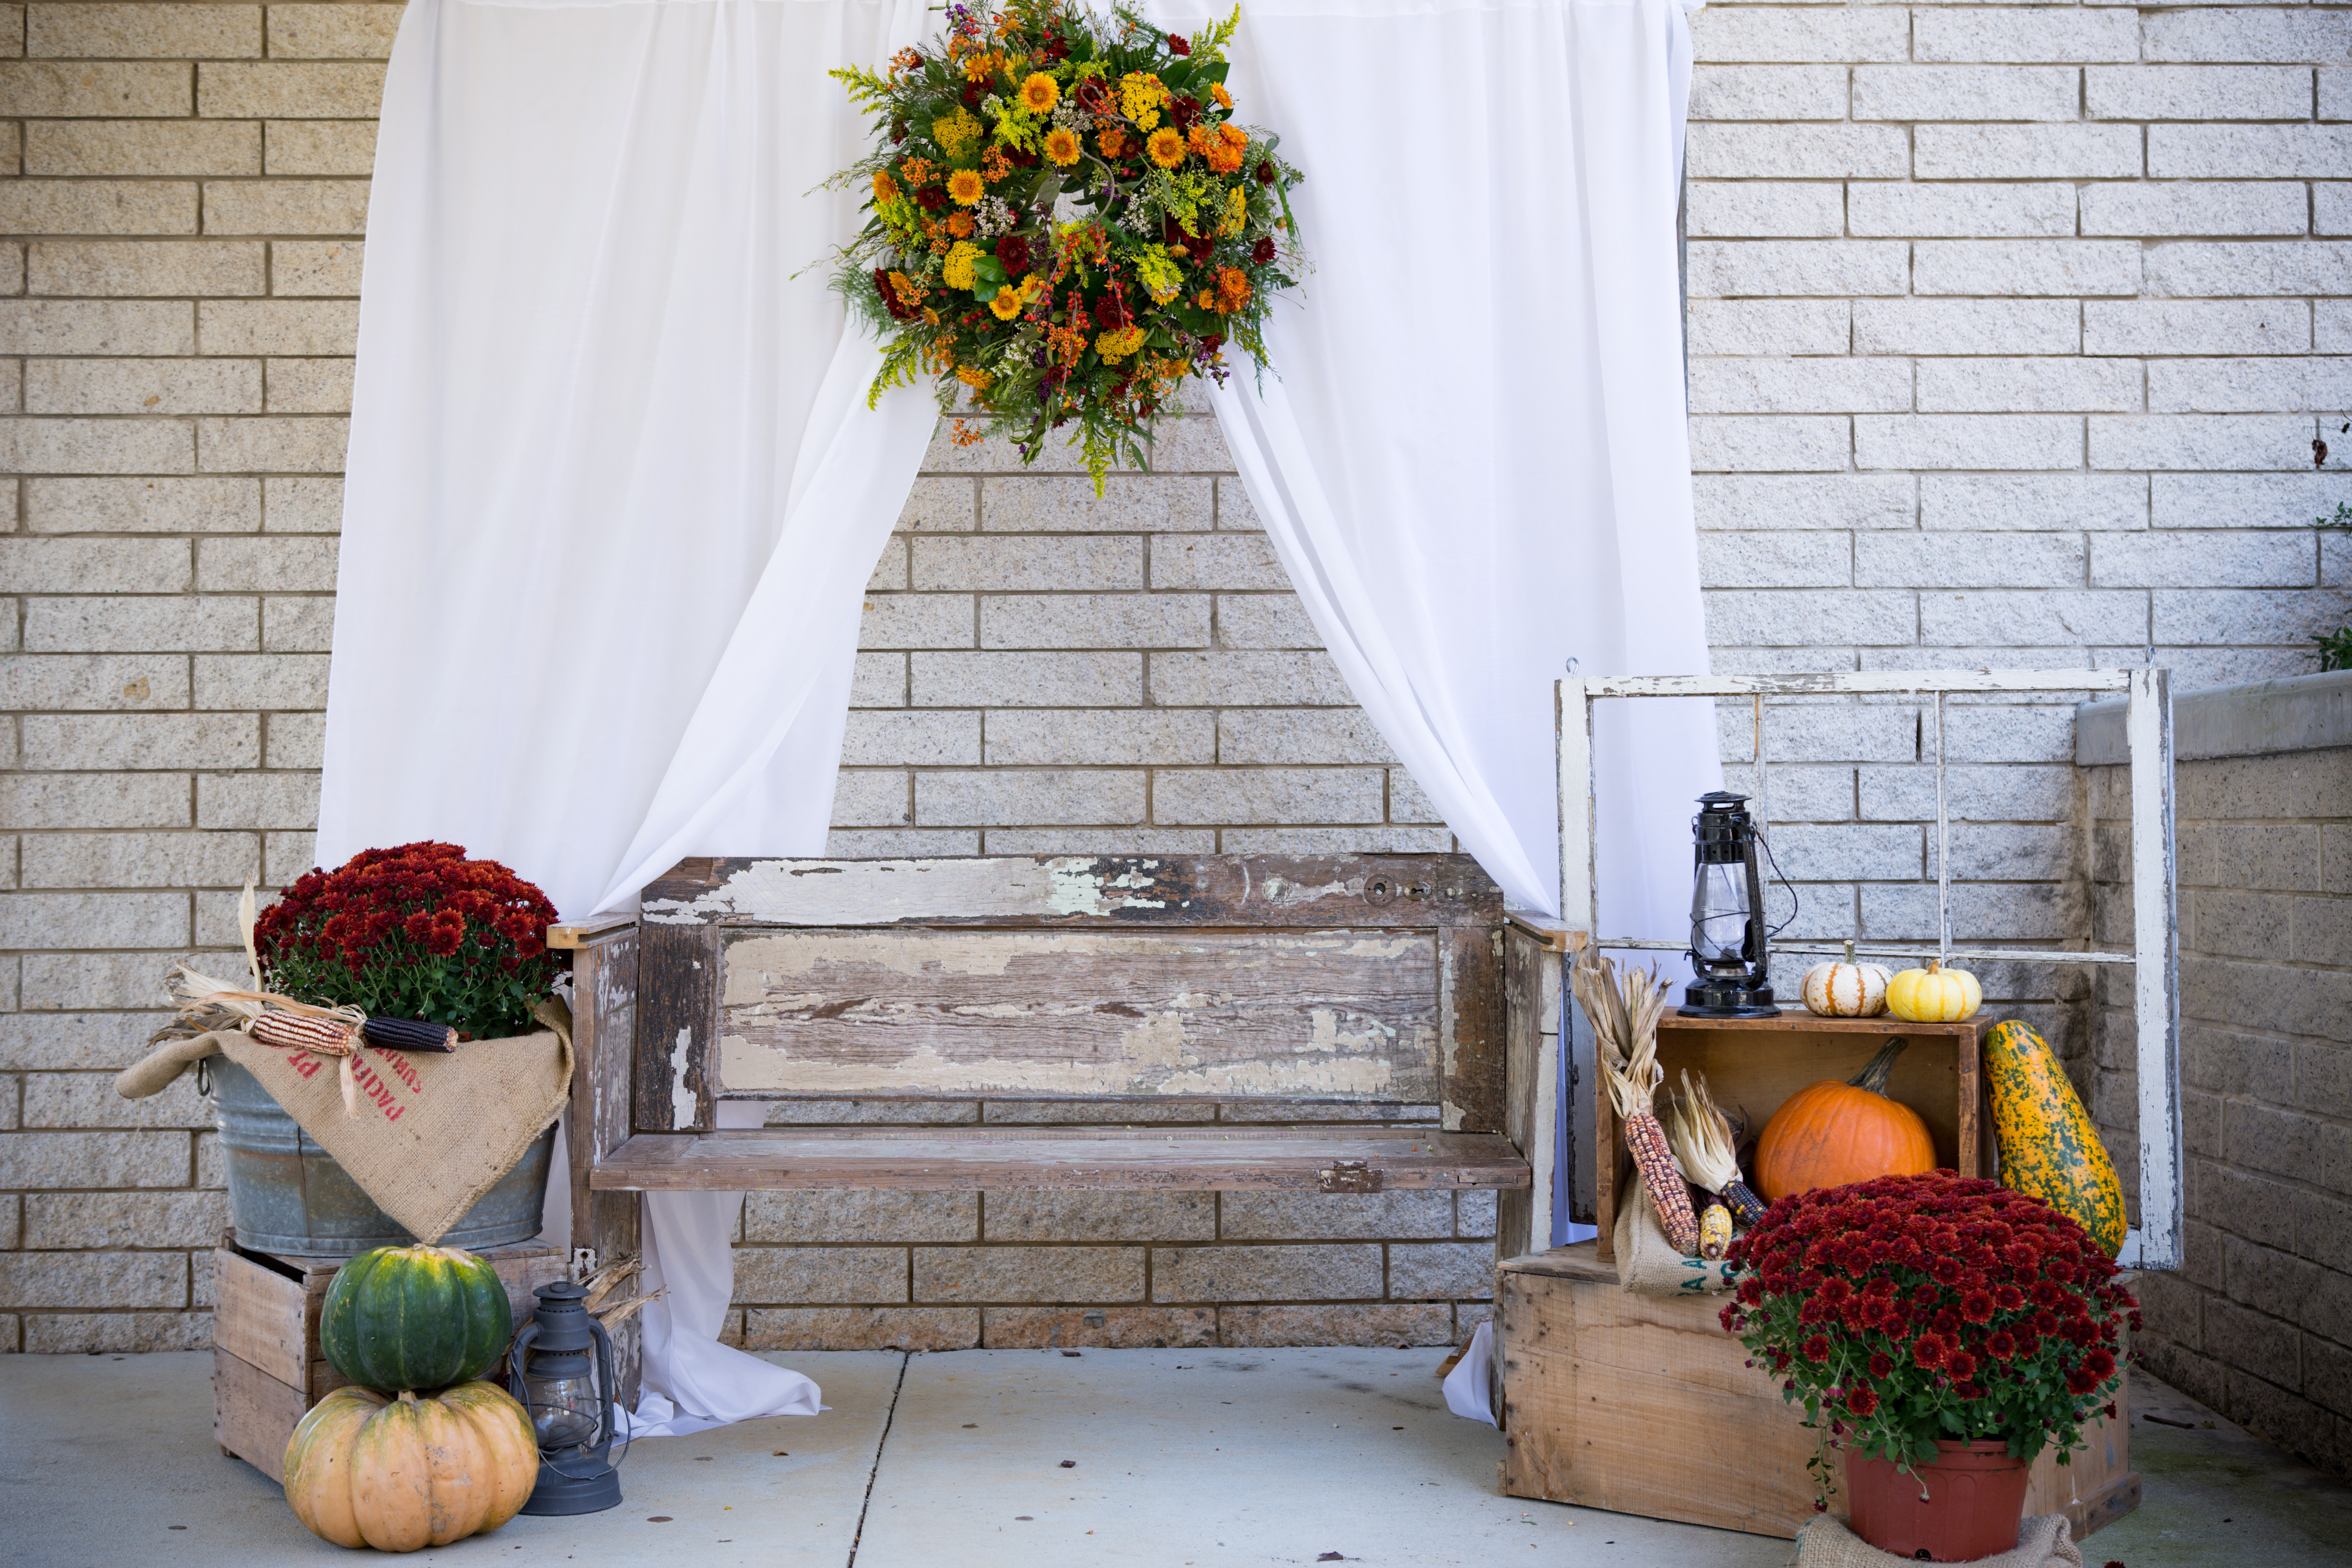 A wooden bench surrounded by a white drape with a wreath, red flowers in pots and various gourds